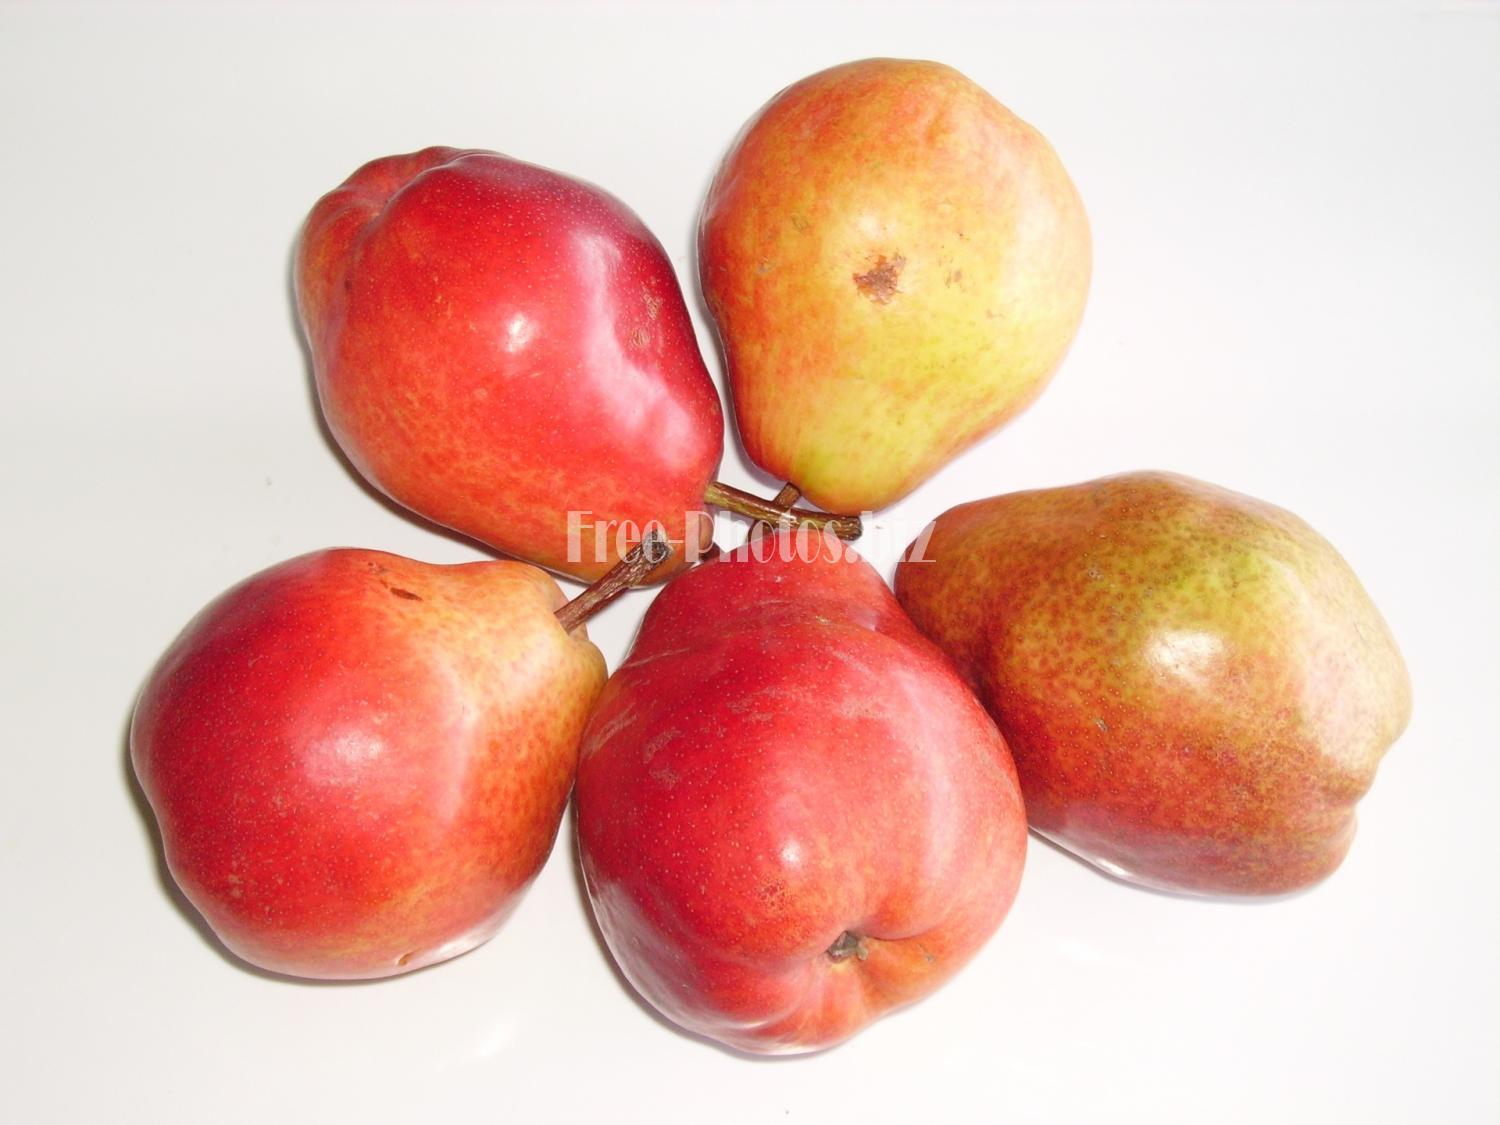 Rote Birnen. Red pears from Argentina.